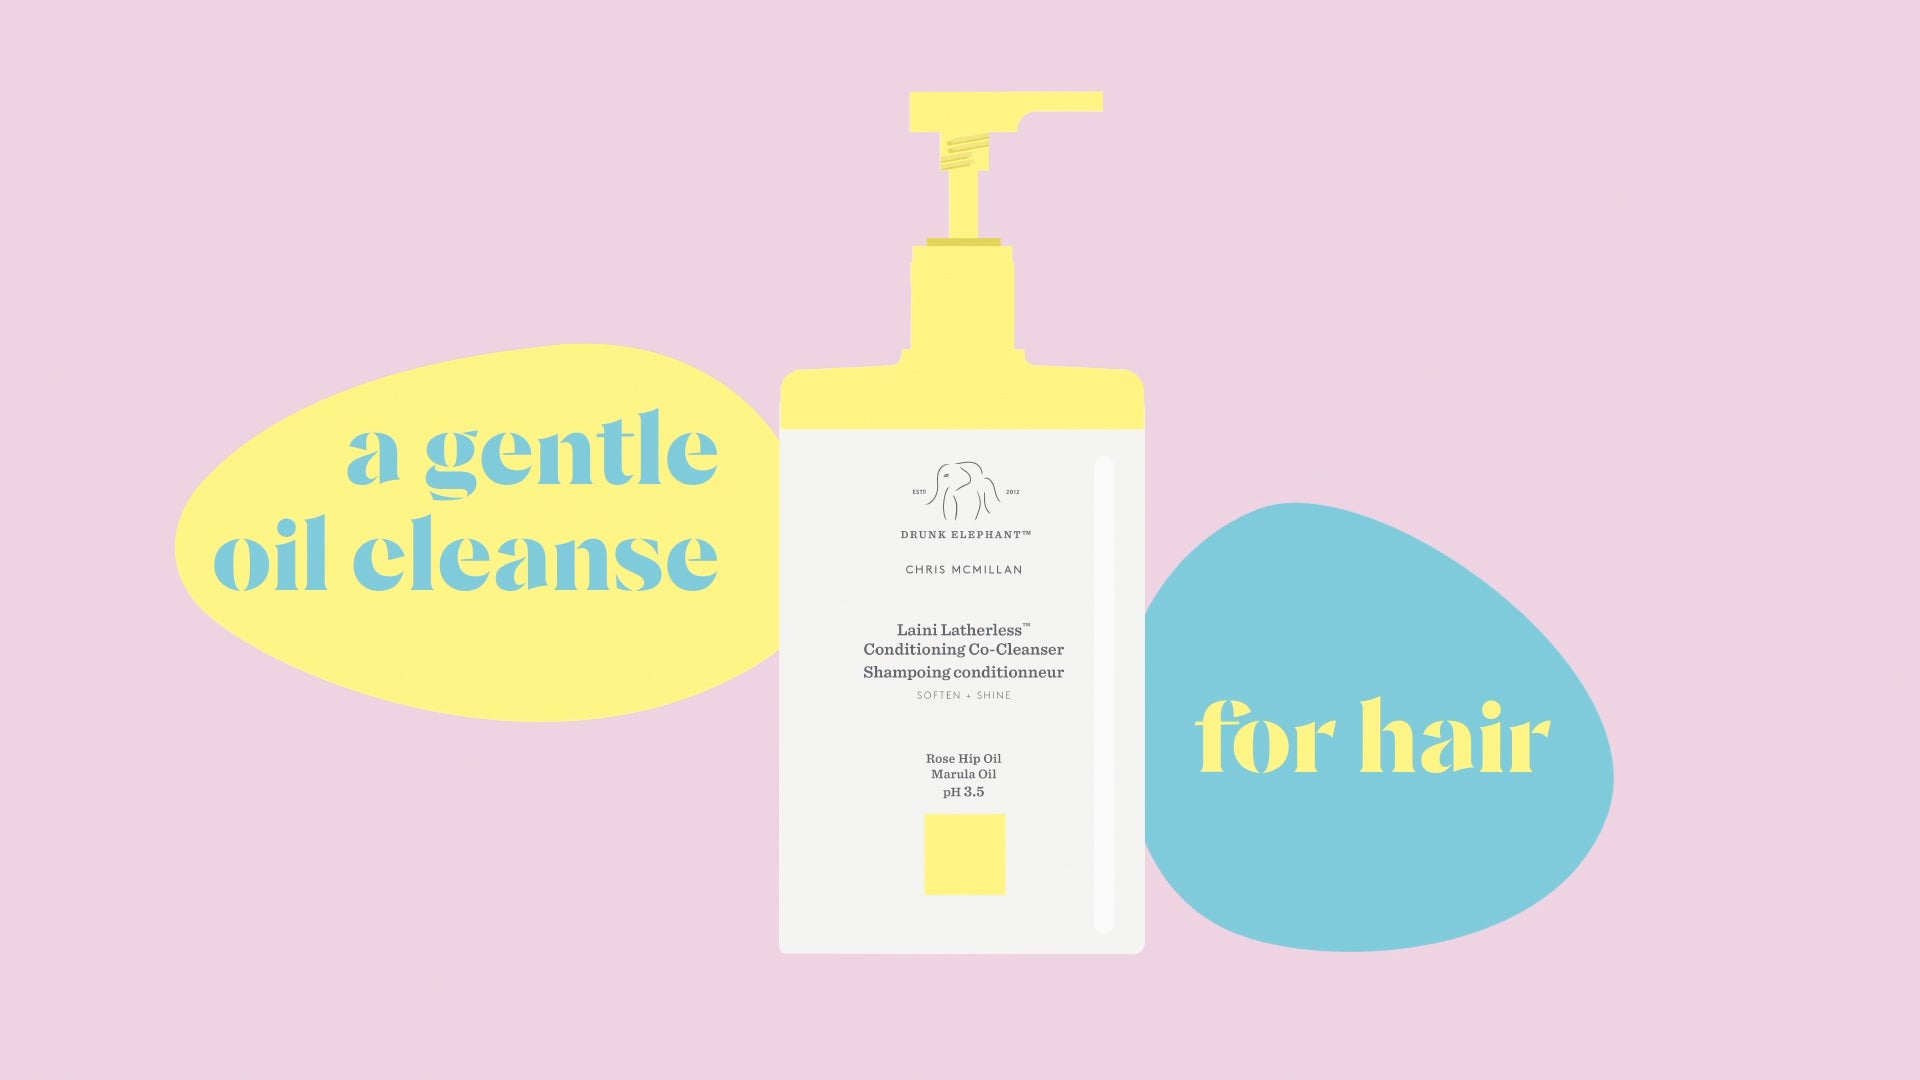 Introducing Laini Latherless: a gentle oil cleanse for hair (desktop placeholder image)